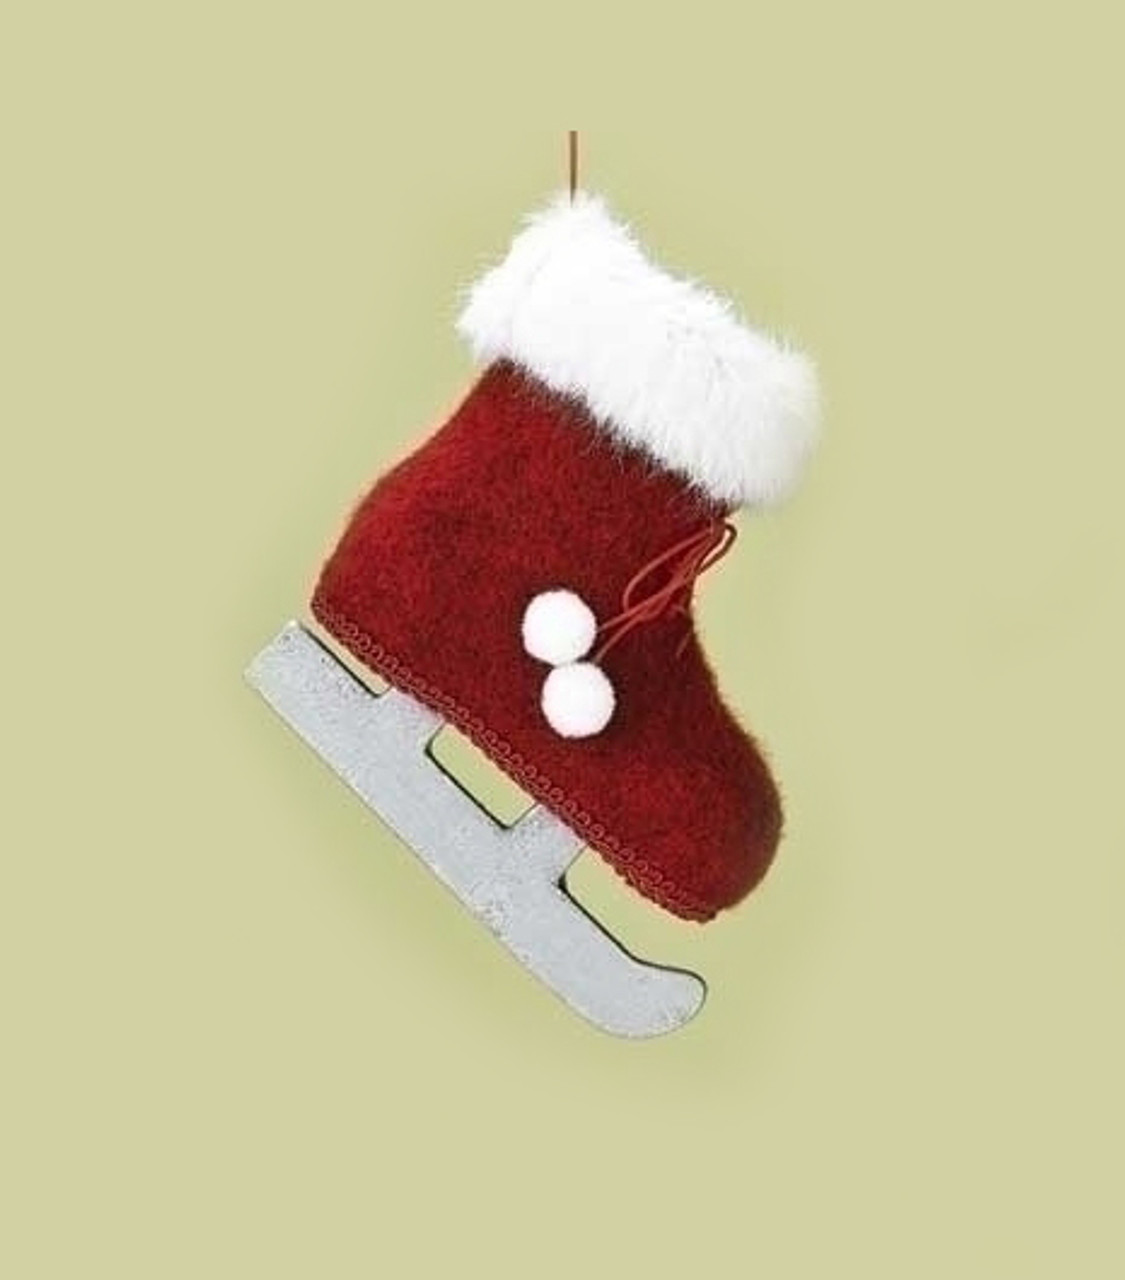 425 country alpine red and white faux fur trimmed ice skate christmas ornament with pom poms 31454762 - Ice Skate Christmas Decoration